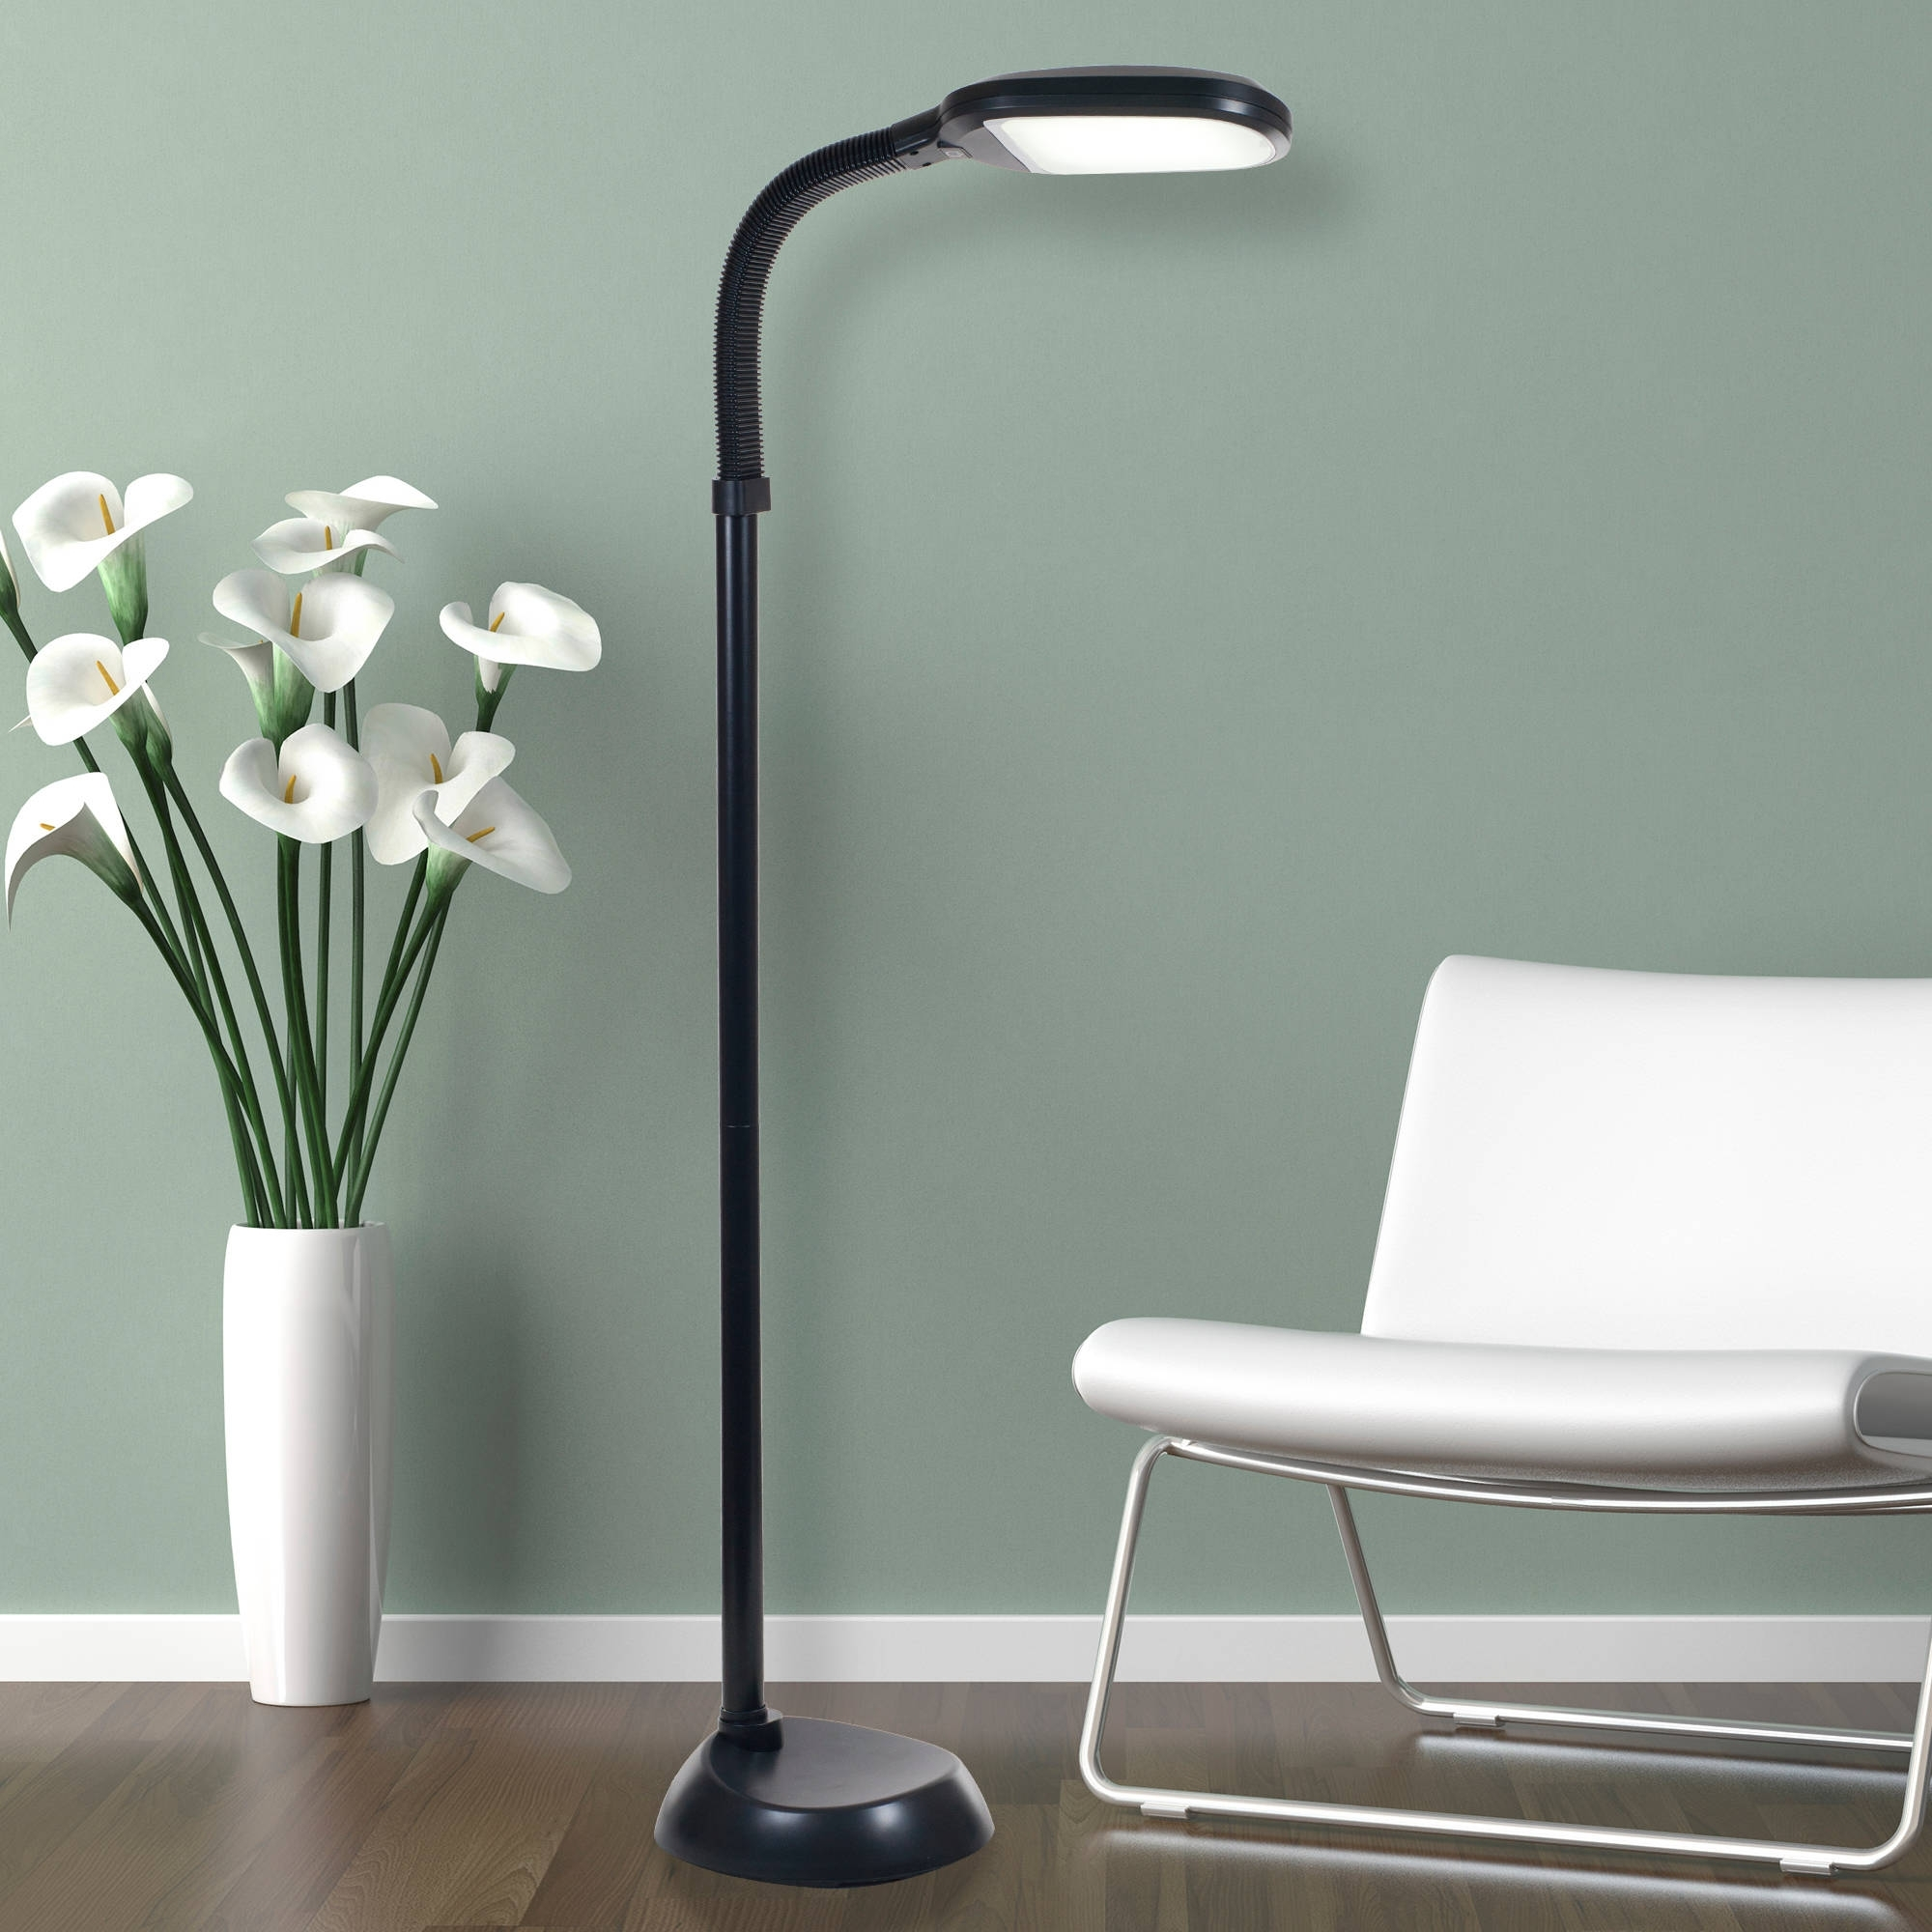 Lavish Home Led Sunlight Floor Lamp With Dimmer Switch Within Walmart Living Room Table Lamps (View 13 of 15)